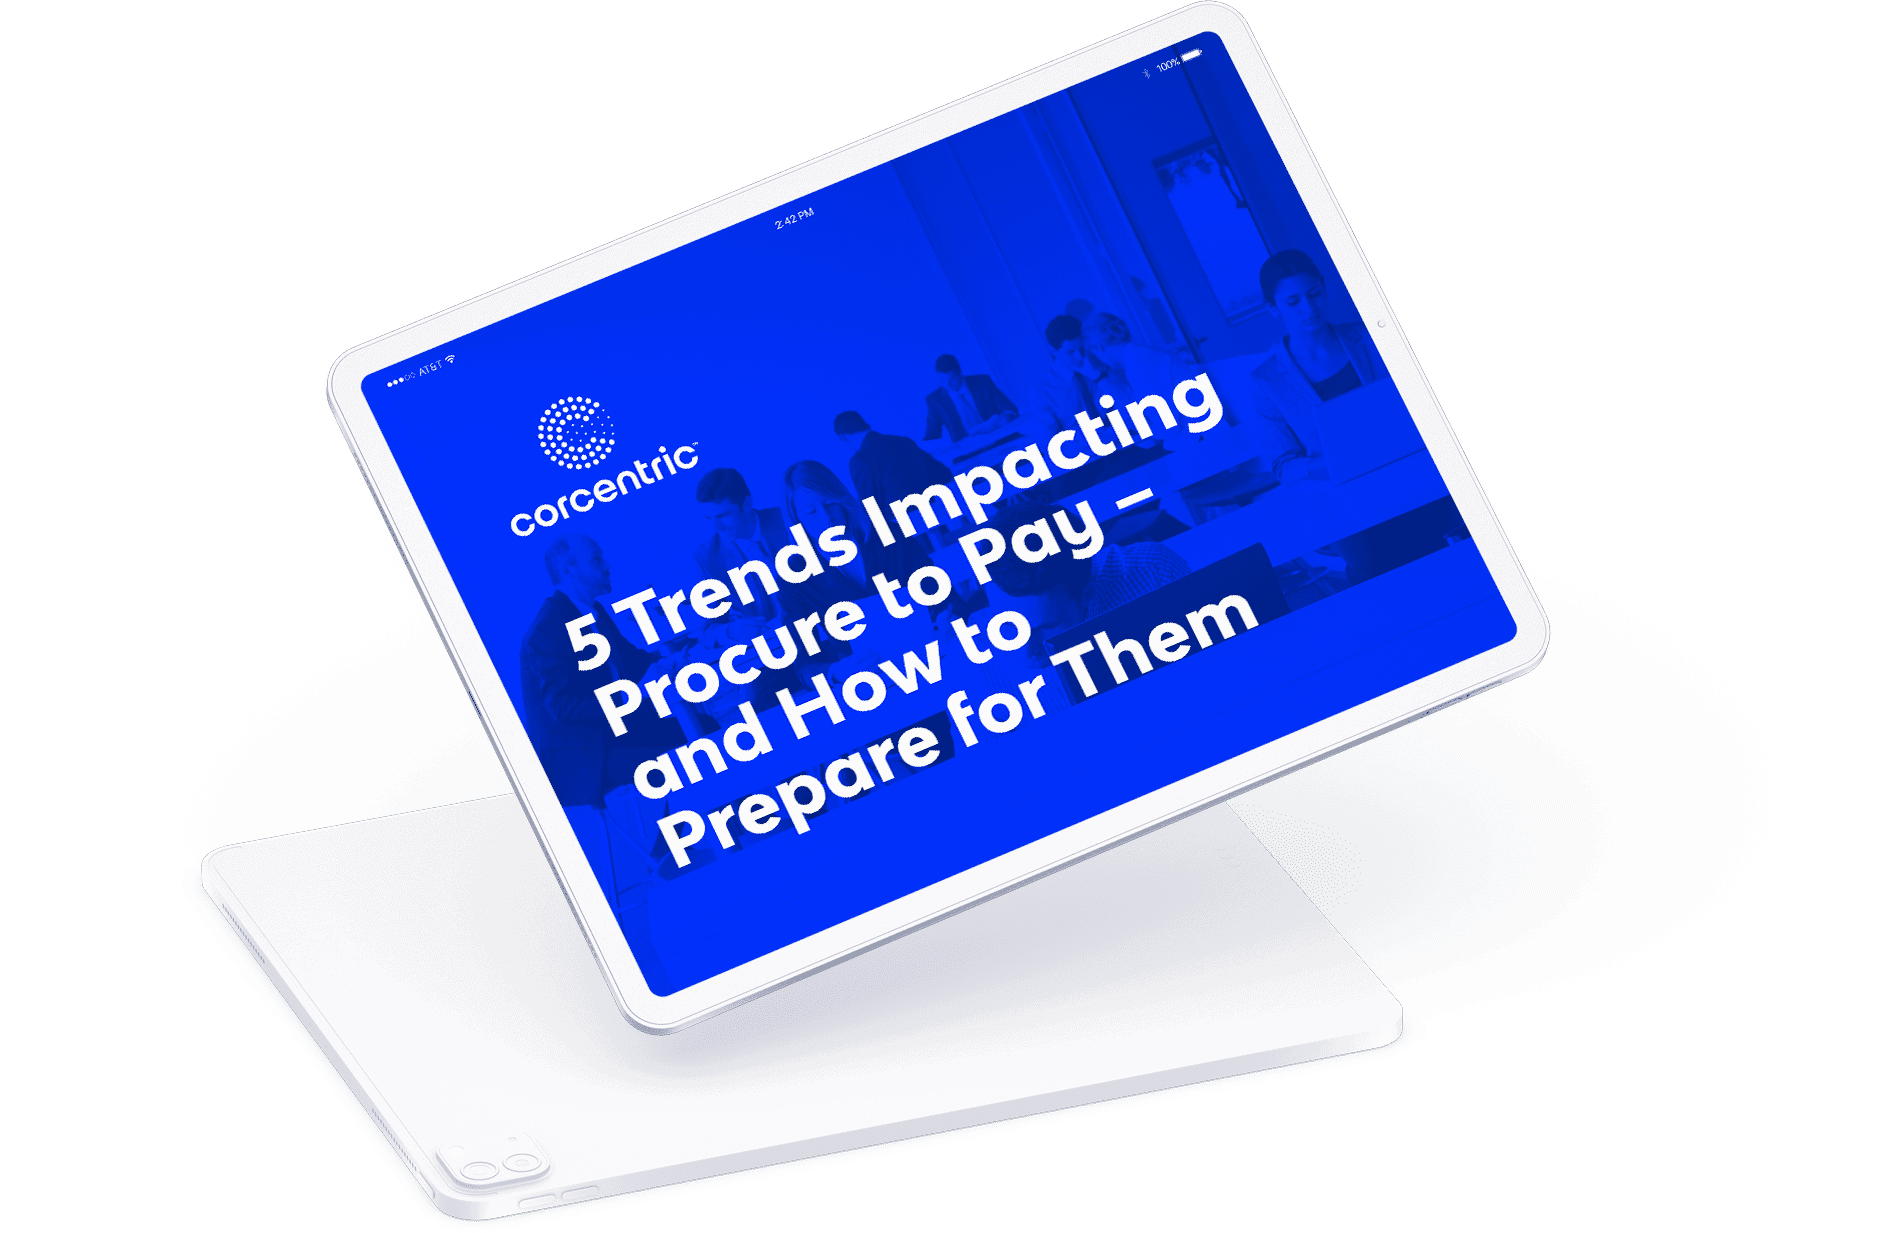 webinar-5-trends-impacting-procure-to-pay-and-how-to-prepare-for-them-asset